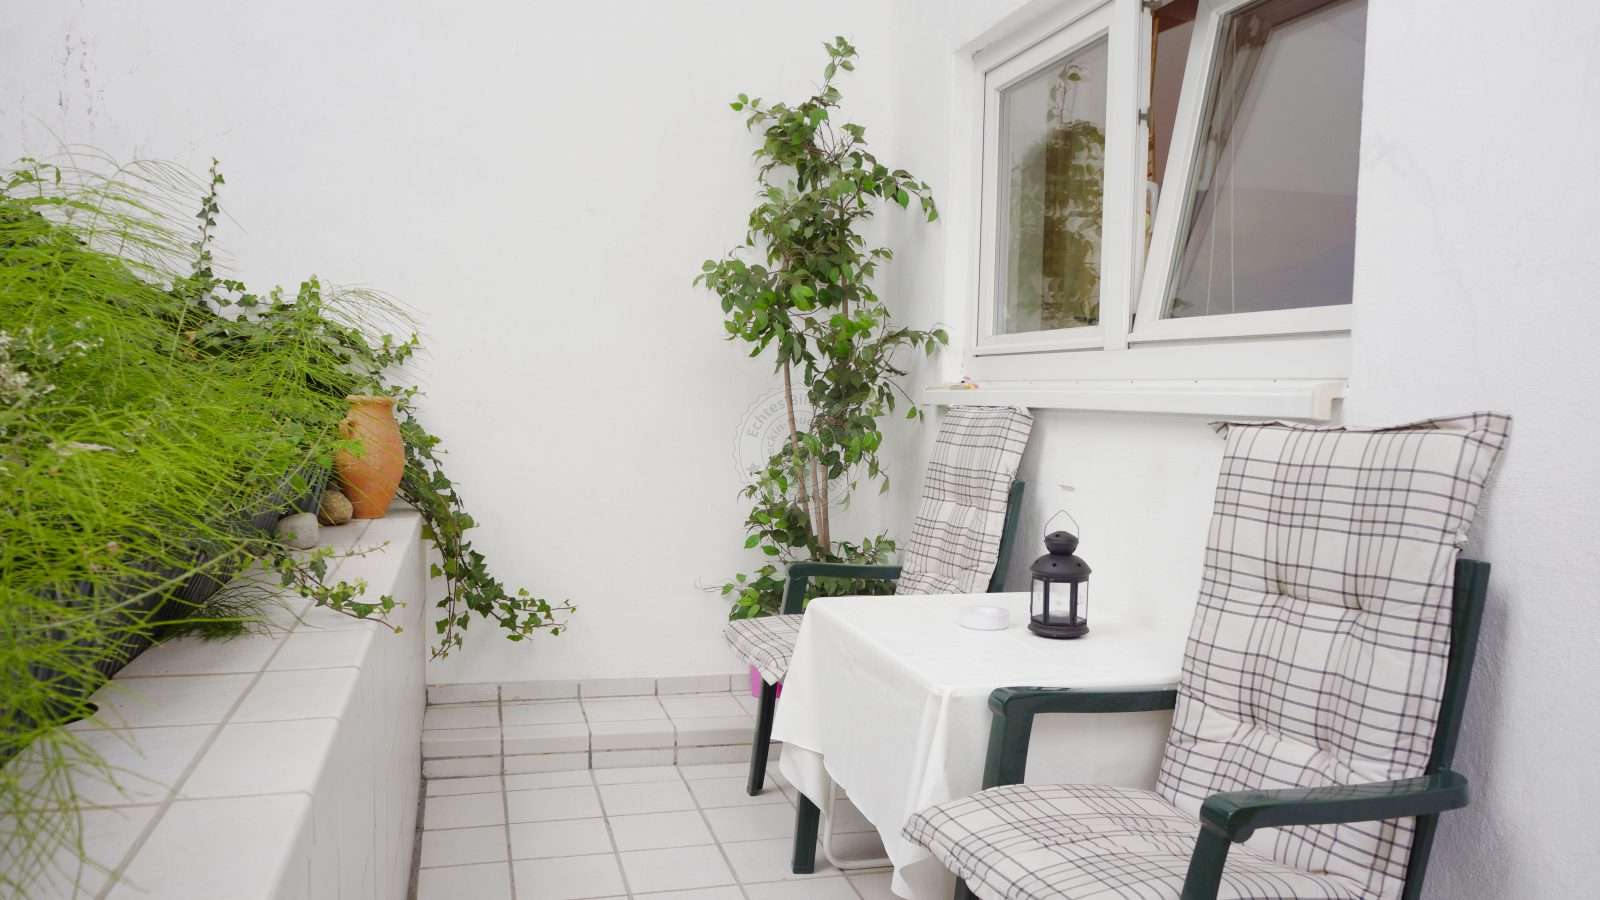 Small, private terrace - an idyll after a busy day